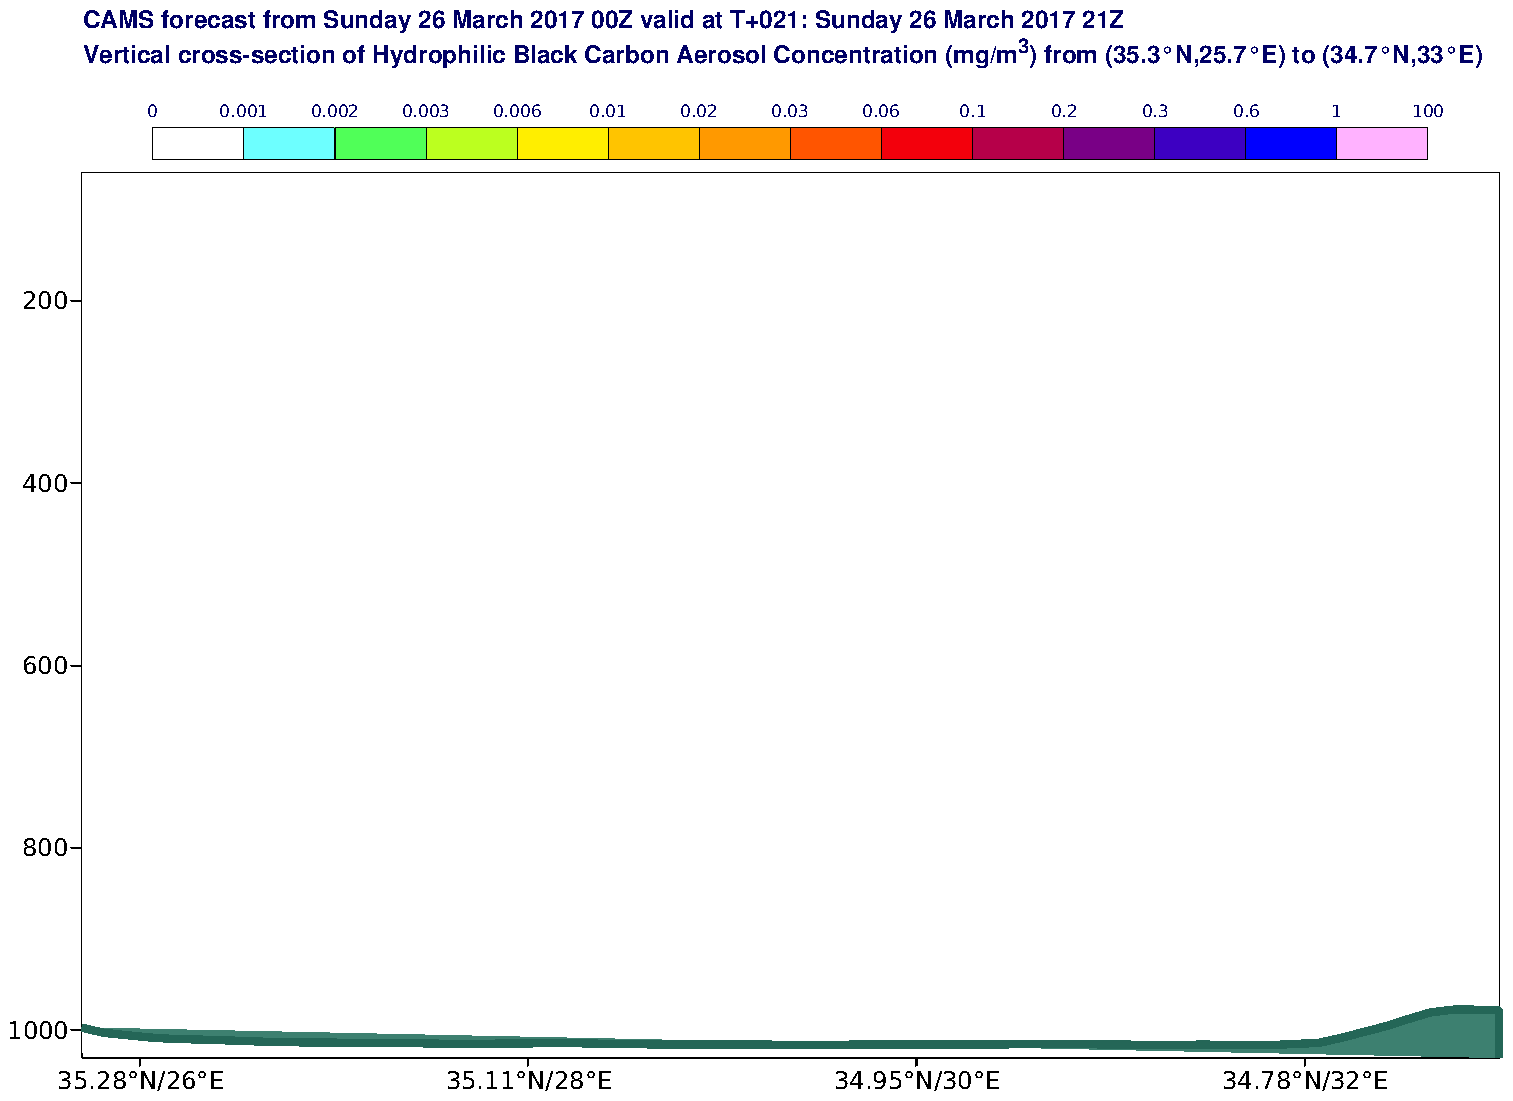 Vertical cross-section of Hydrophilic Black Carbon Aerosol Concentration (mg/m3) valid at T21 - 2017-03-26 21:00